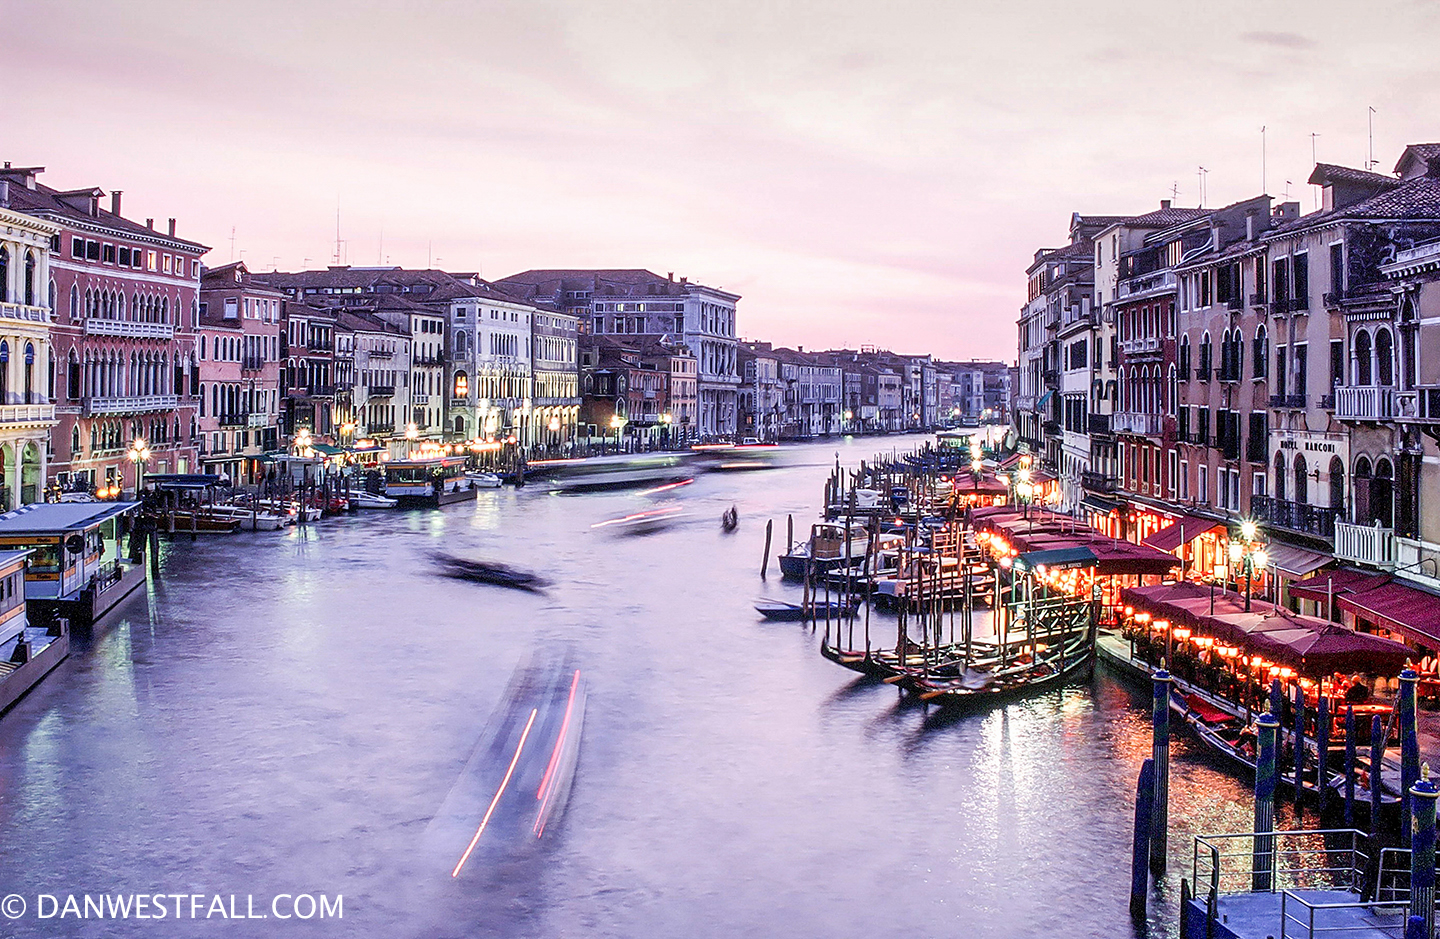 Venice at sunset.#0388